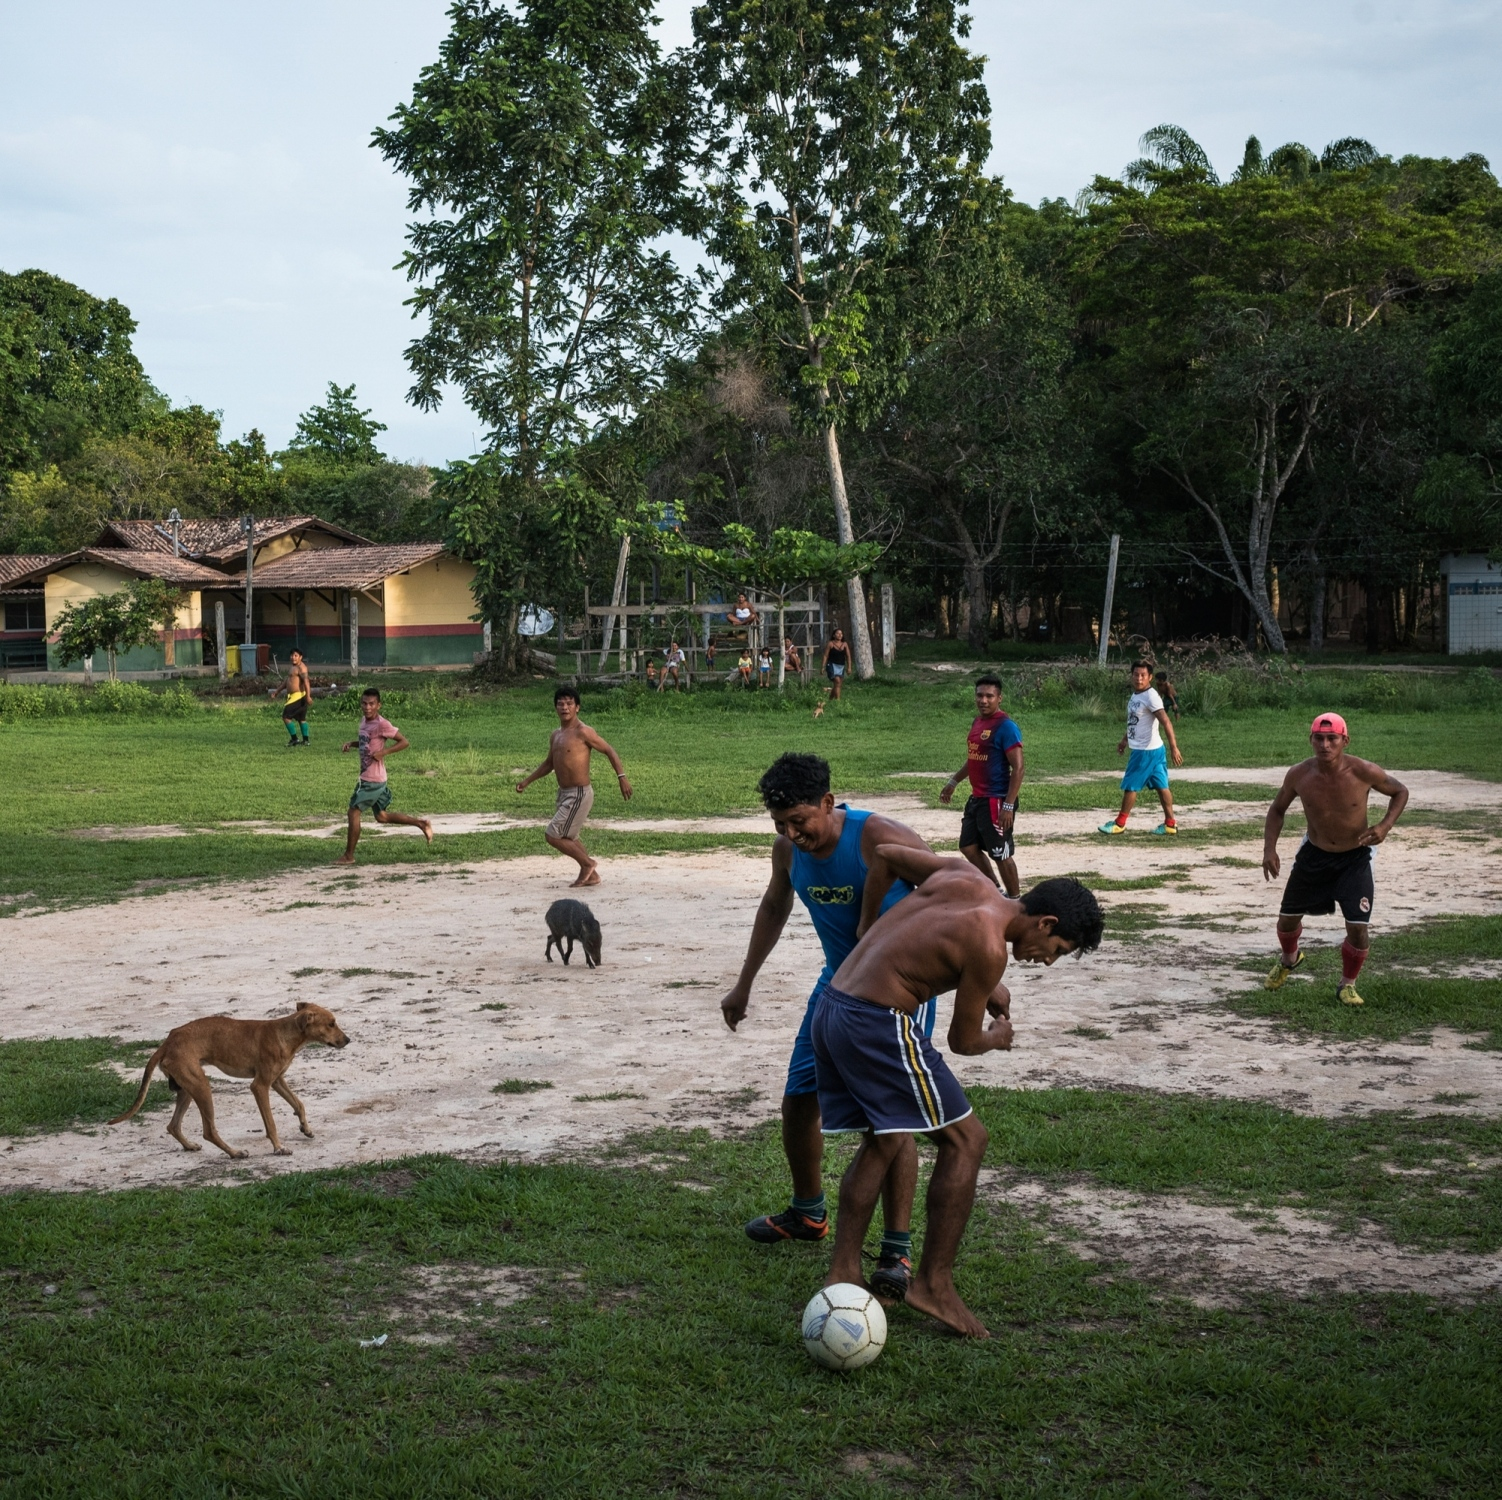 2016. Munduruku from the villages of Praia Do Indios, L'Aranjao and Praia Do Mangue play a evening match of Foot Ball in the village of Praia Do Mangue near the city of Itaituba in Para state, Brazil. /Aaron Vincent Elkaim